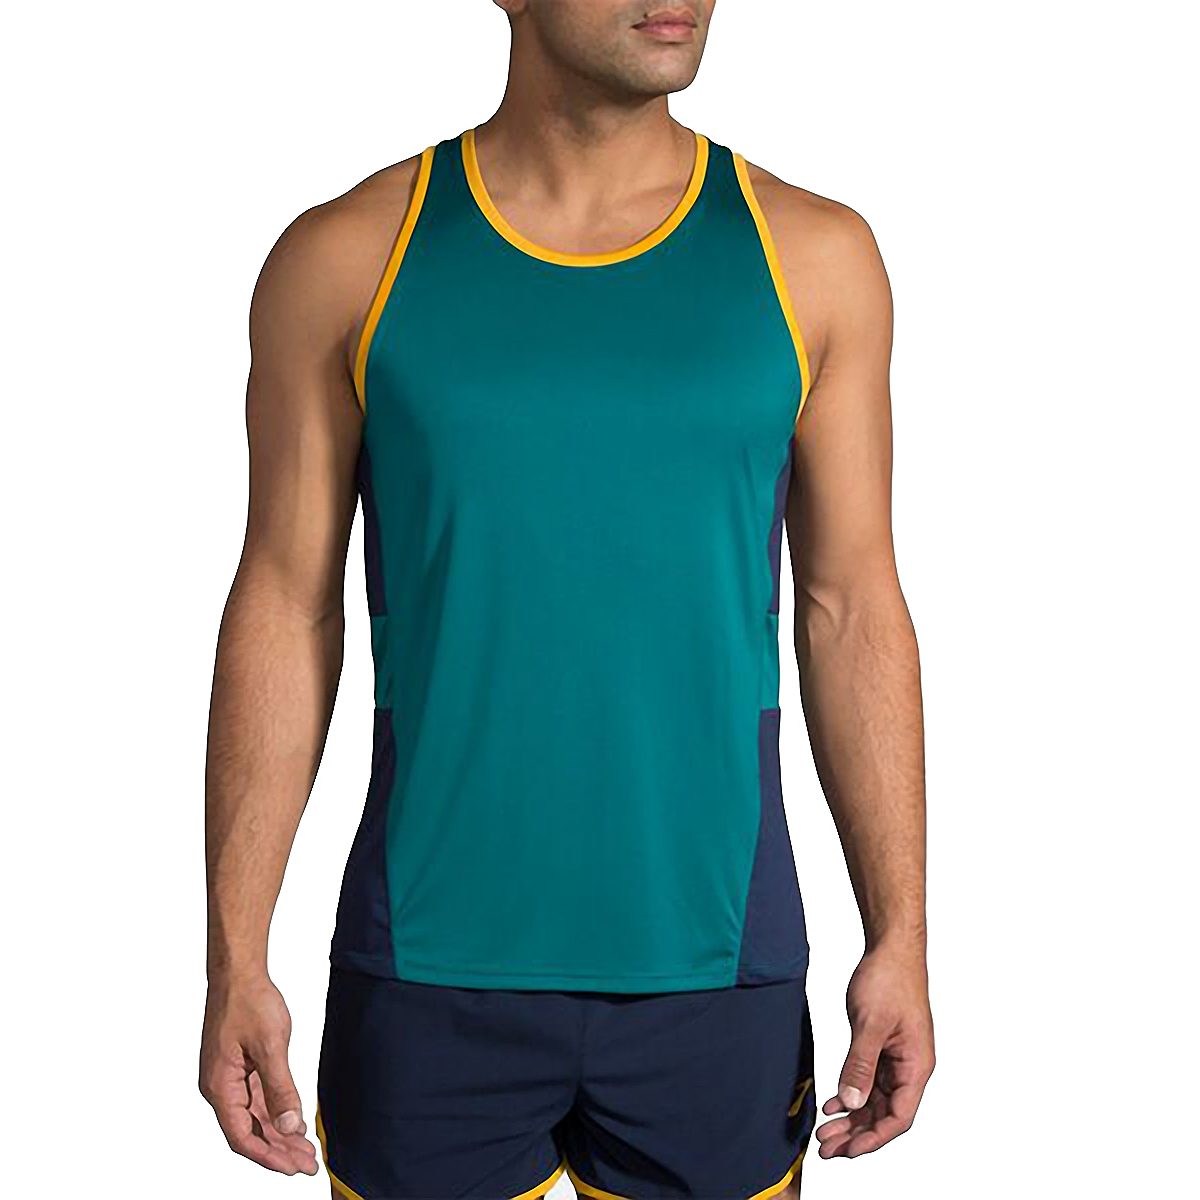 Men's Brooks Stealth Singlet  - Color: Spruce/Navy/Yellow - Size: S, Spruce/Navy/Yellow, large, image 1